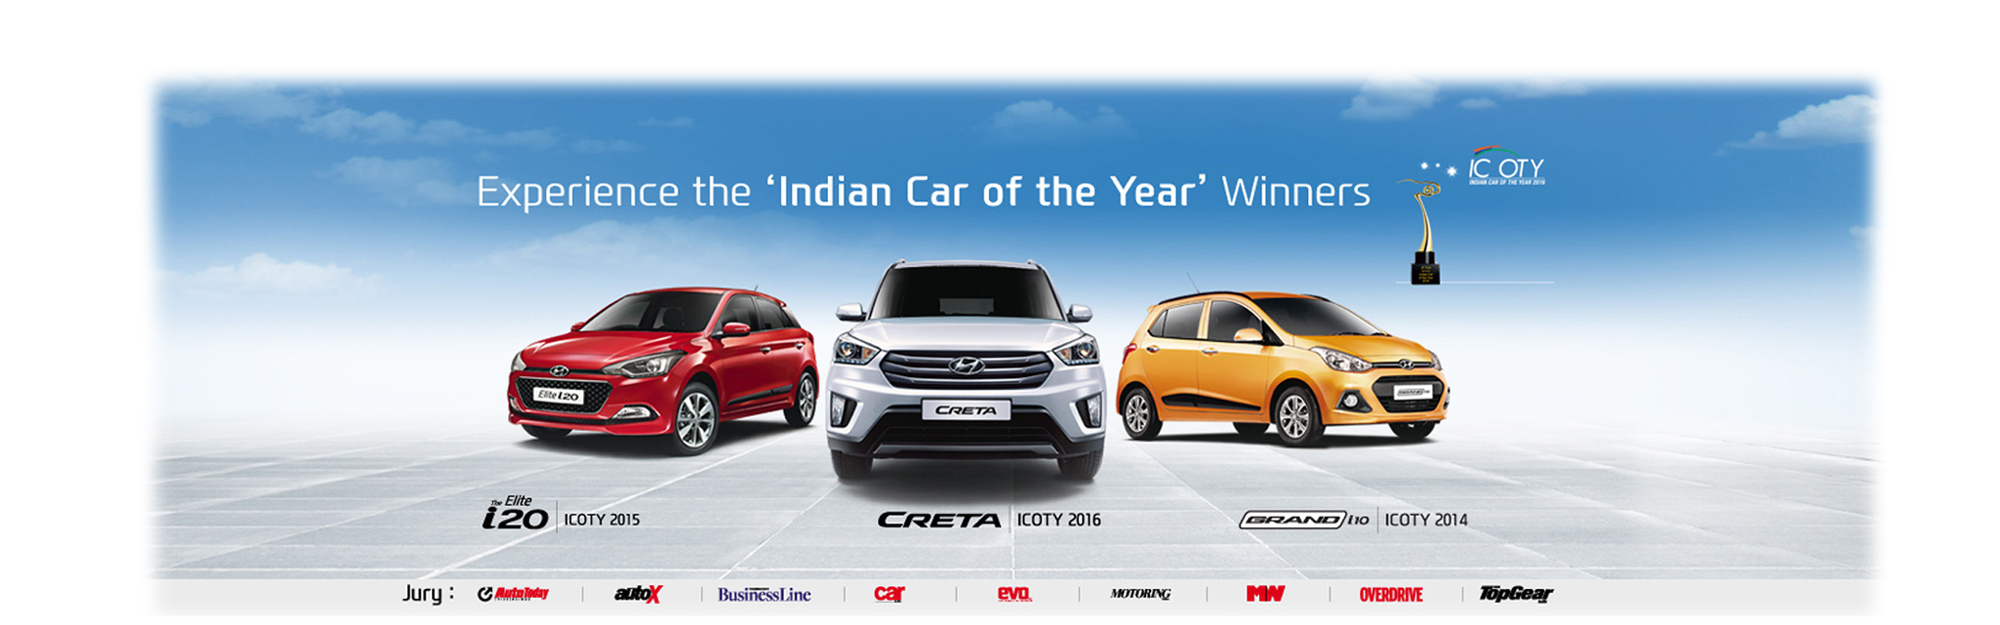 Hyundai Cars - icoty Award Winners - Shreenath Hyundai